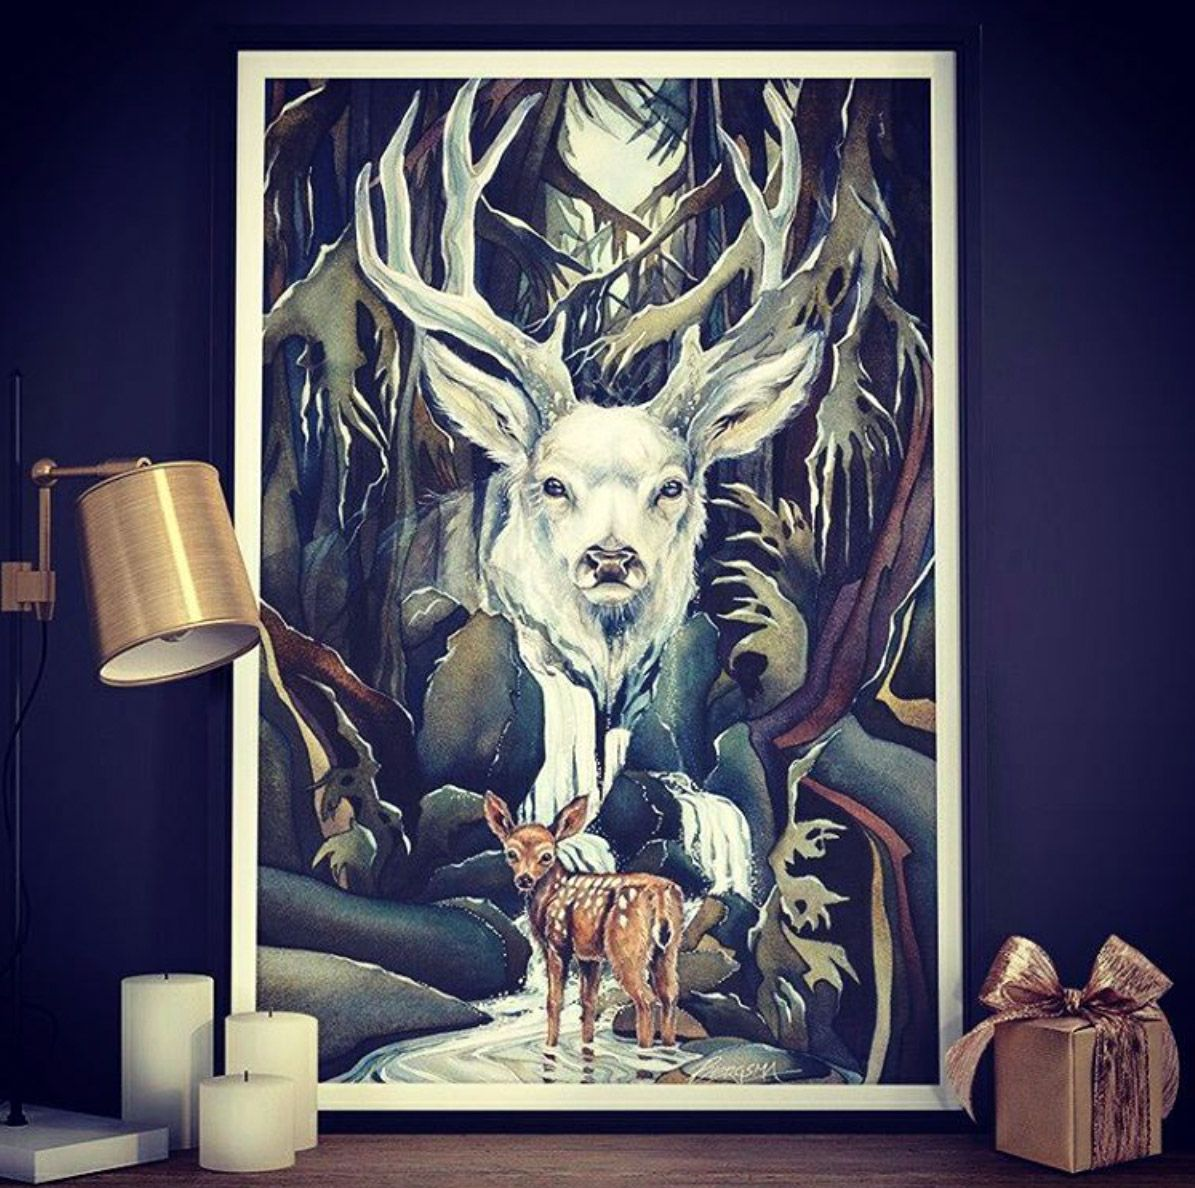 """Wild heart"" by Jody Bergsma  #christmas #giftideas #wallart #decoration #wandbild #homesweethome #illustration #deer #stag #antlers #forest #nature #posterlounge #art"